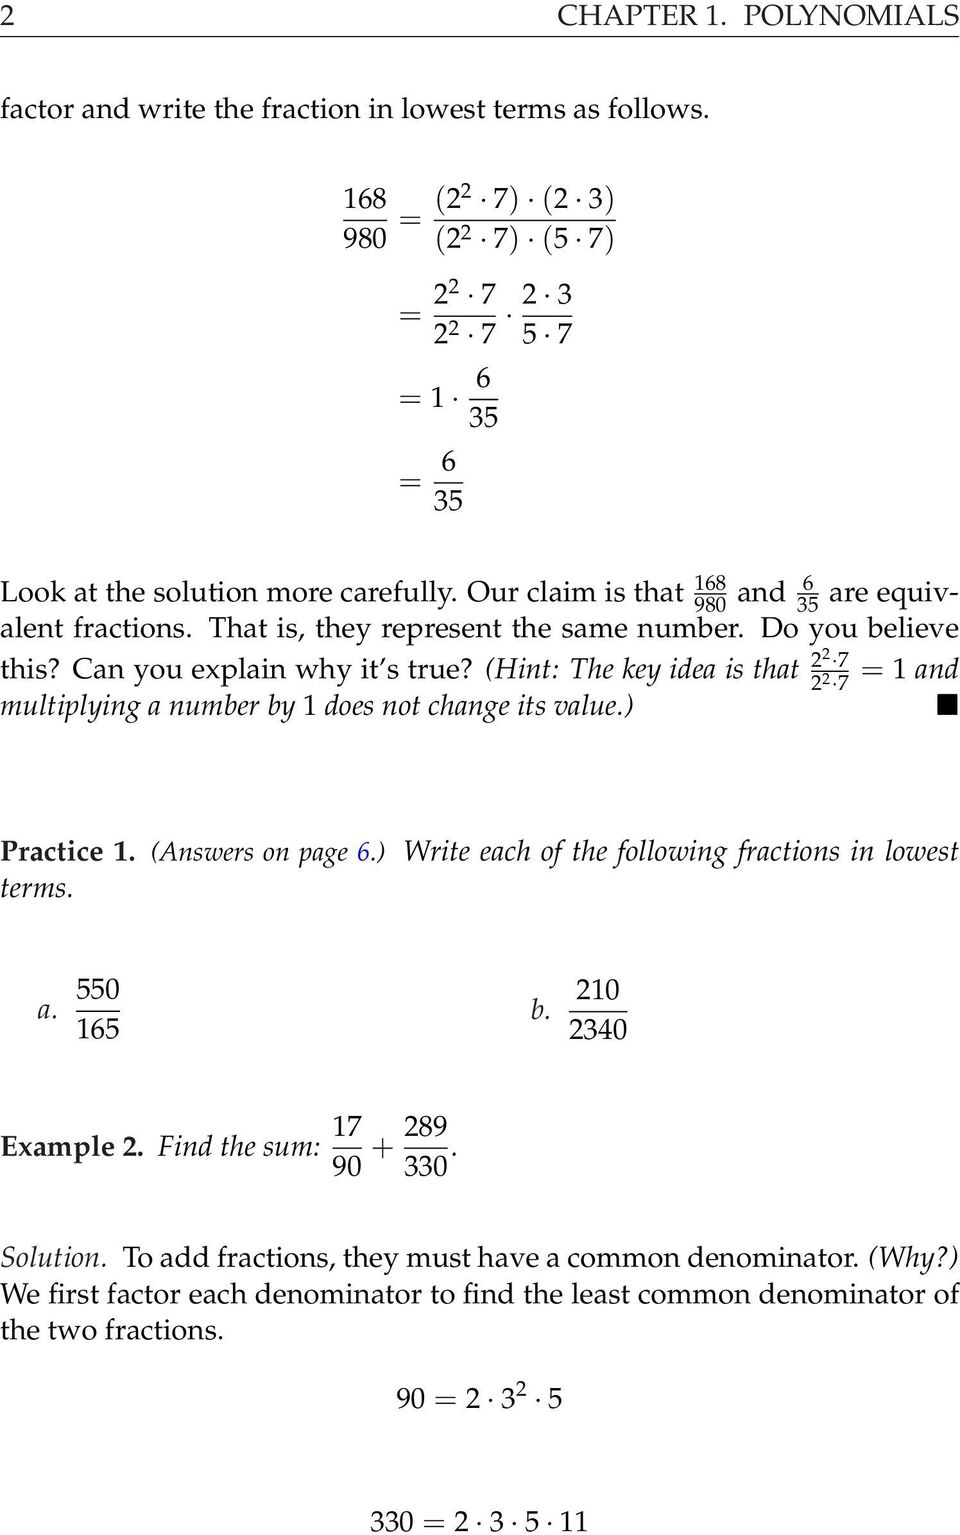 (Hint: The key idea is that 22 7 = and 22 7 multiplying a number by does not change its value.) Practice. (Answers on page 6.) Write each of the following fractions in lowest terms. a. 550 65 b.